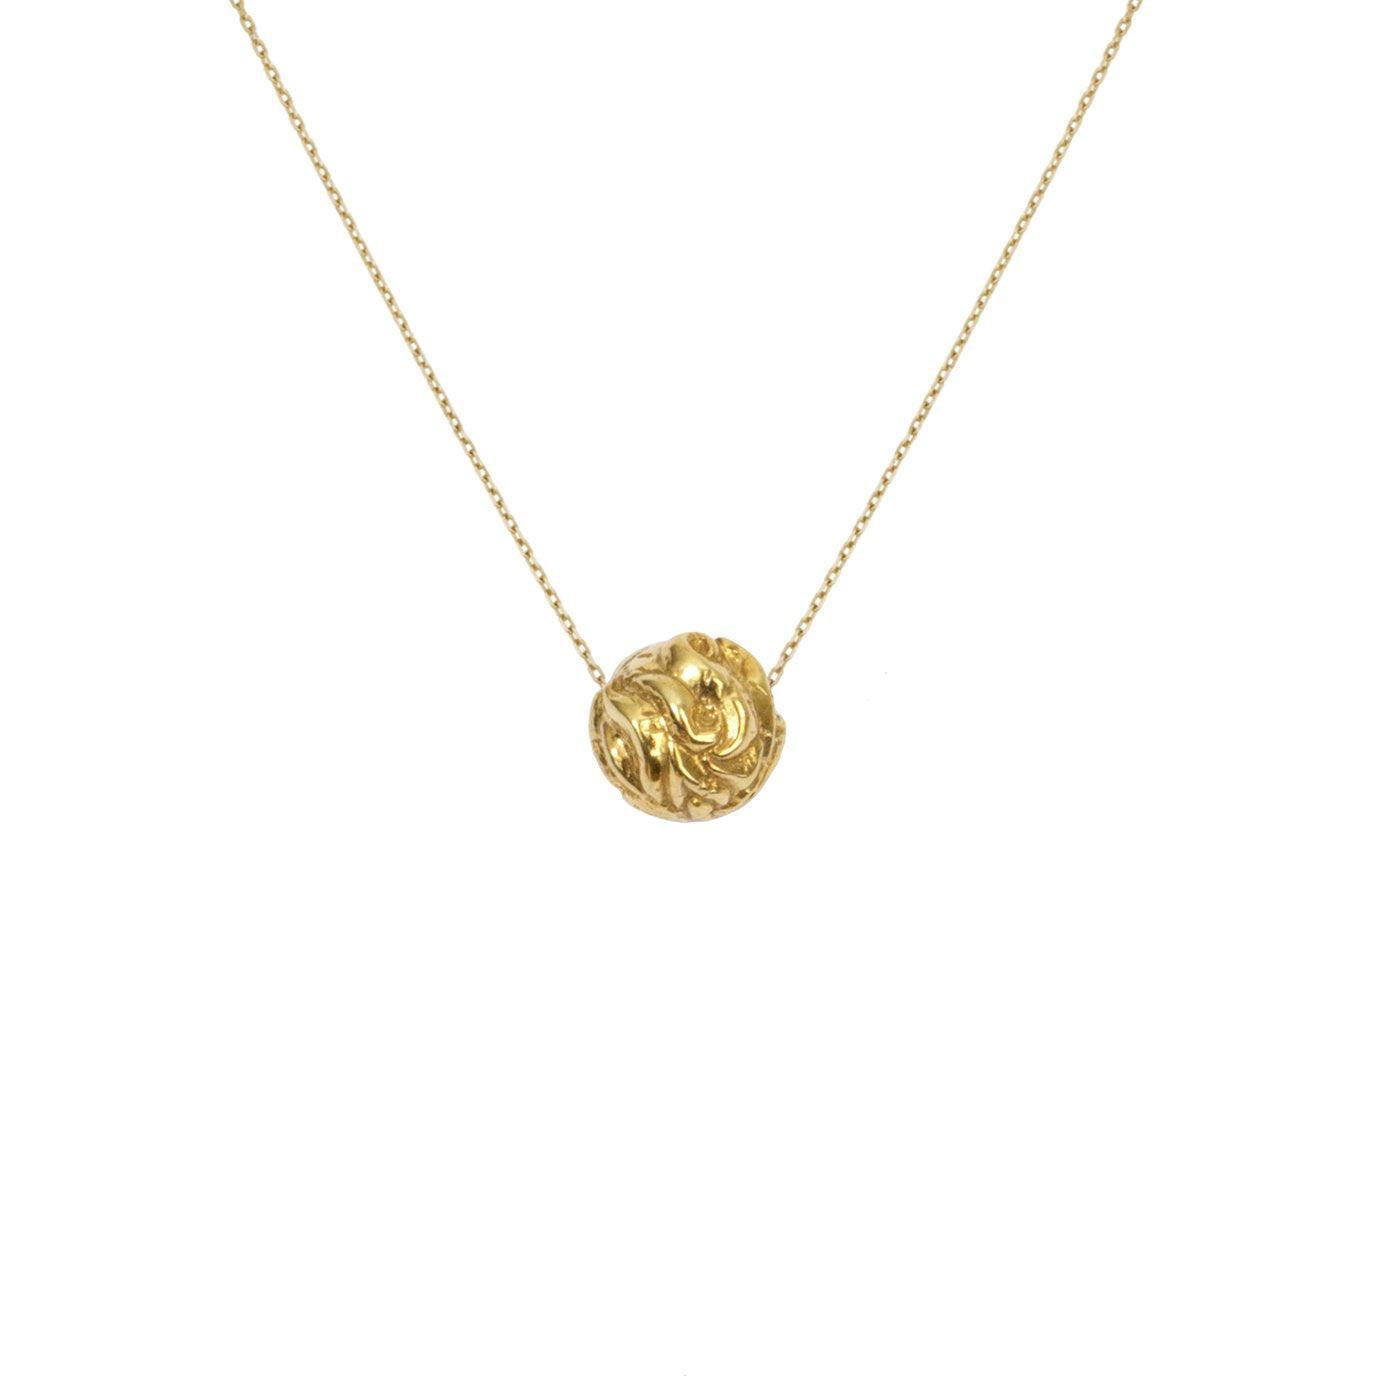 Recyled Gold Necklace with gold ball. The Prophecies of Pythia Pendant, Greek Mythology by Haute & Heir at Natural x Lab